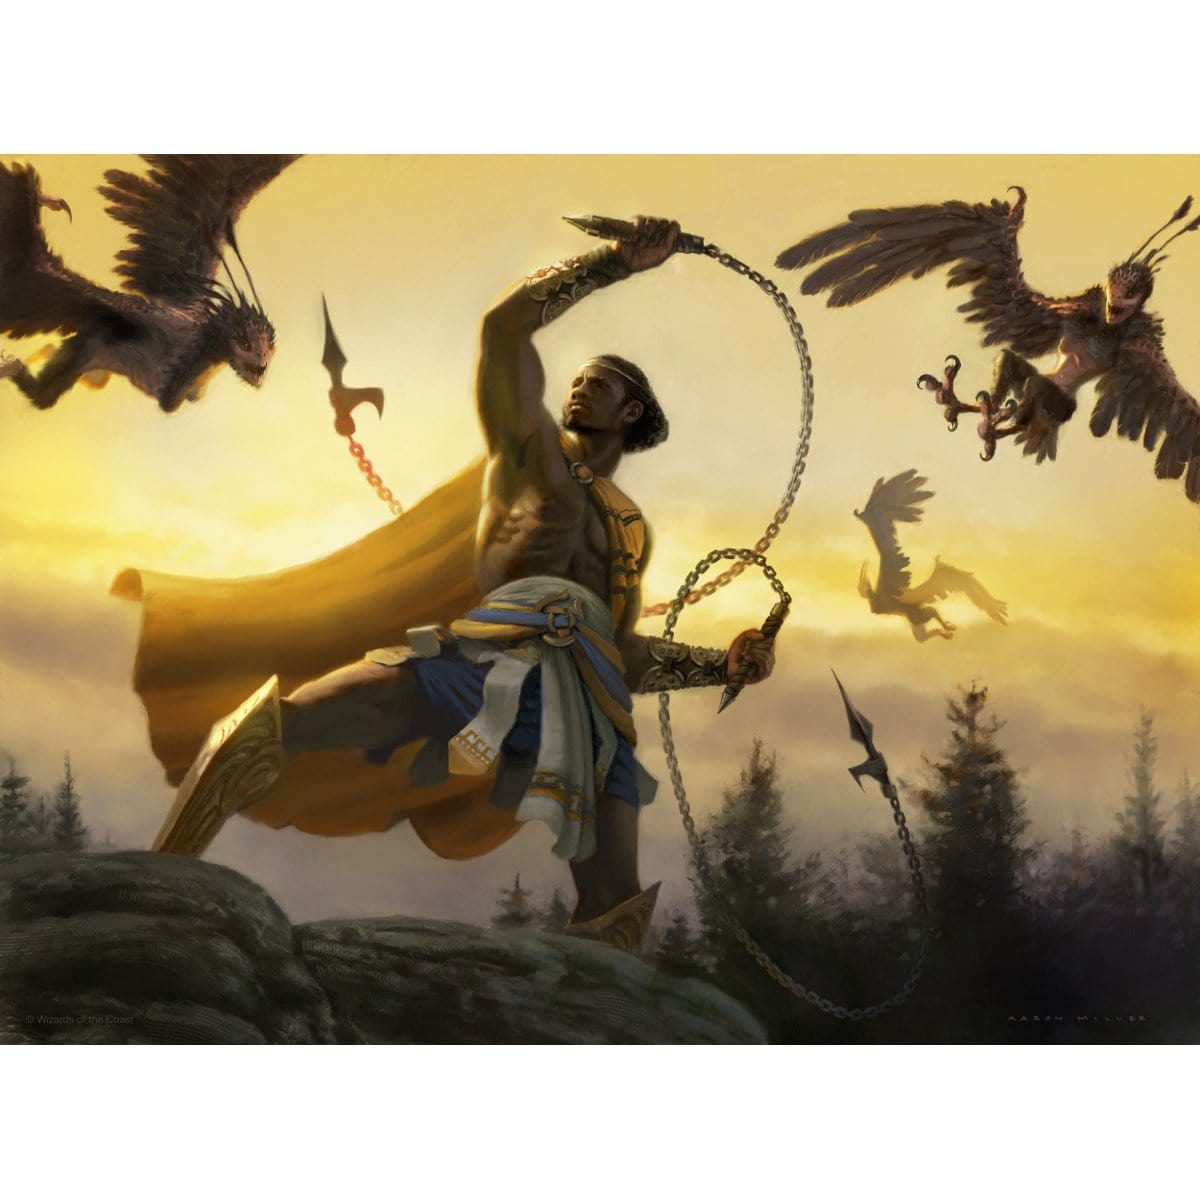 Fabled Hero Print - Print - Original Magic Art - Accessories for Magic the Gathering and other card games